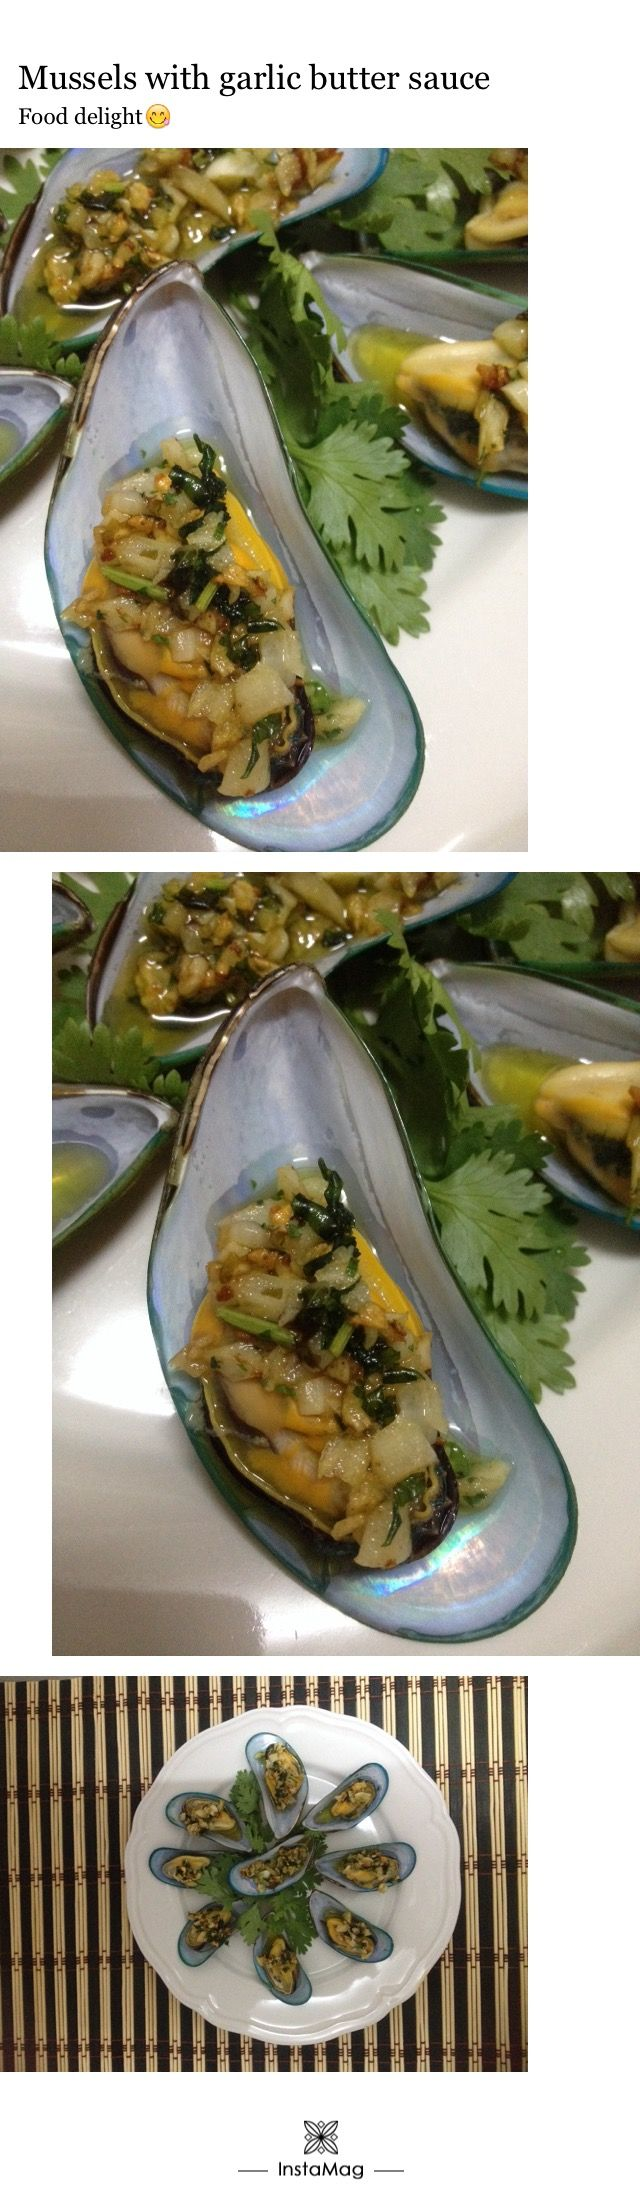 Mussels with garlic butter sauce